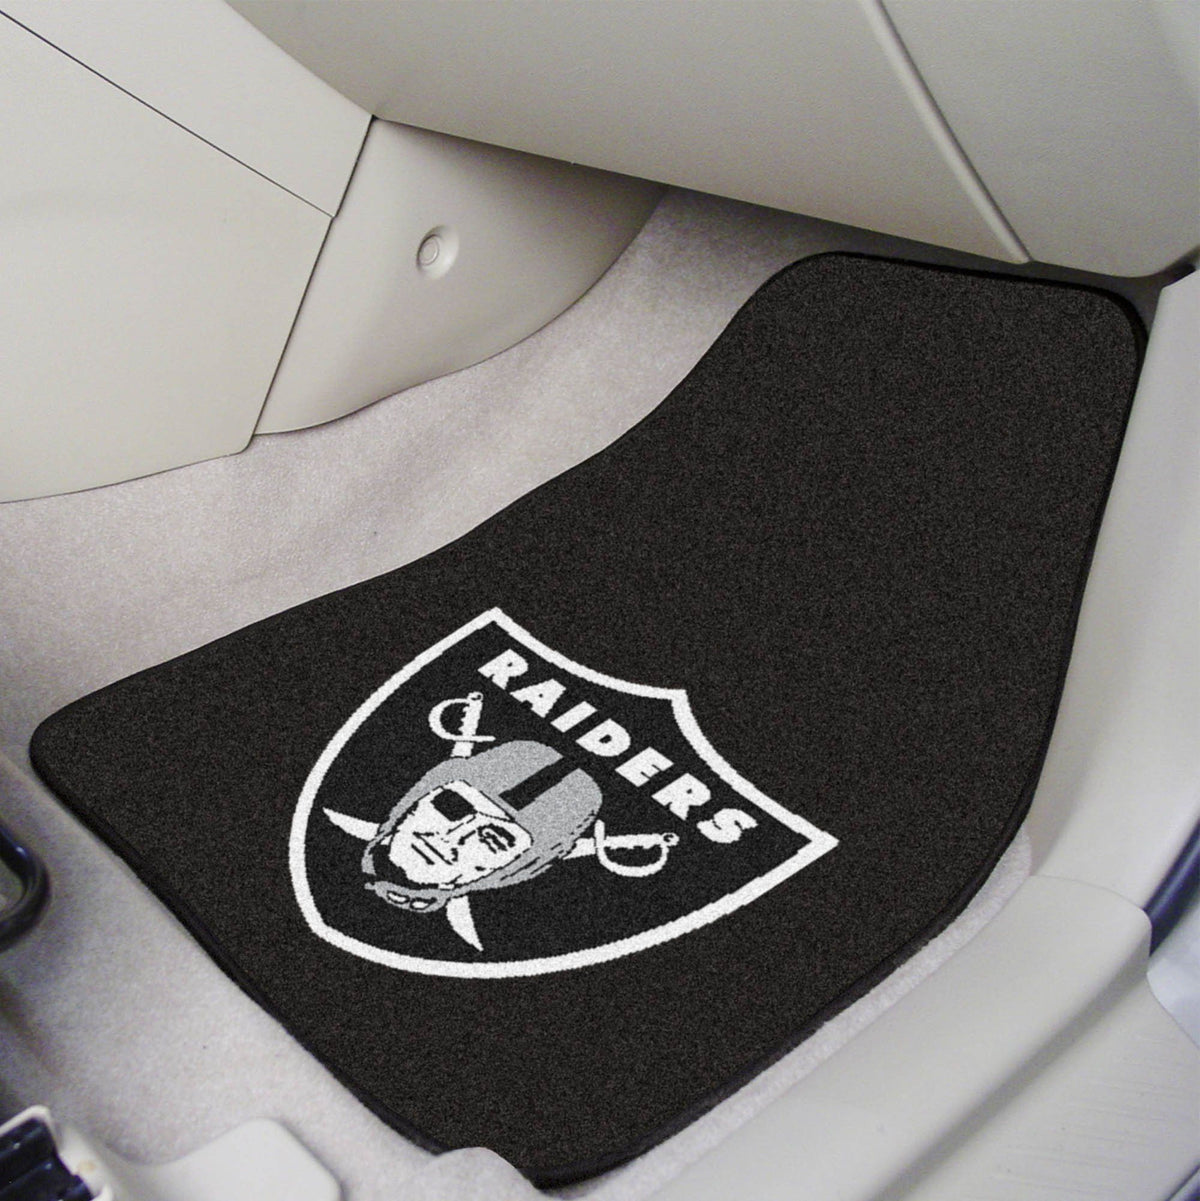 "NFL - 2-pc Carpet Car Mat Set, 17"" x 27"" NFL Mats, Front Car Mats, 2-pc Carpet Car Mat Set, NFL, Auto Fan Mats Las Vegas Raiders"